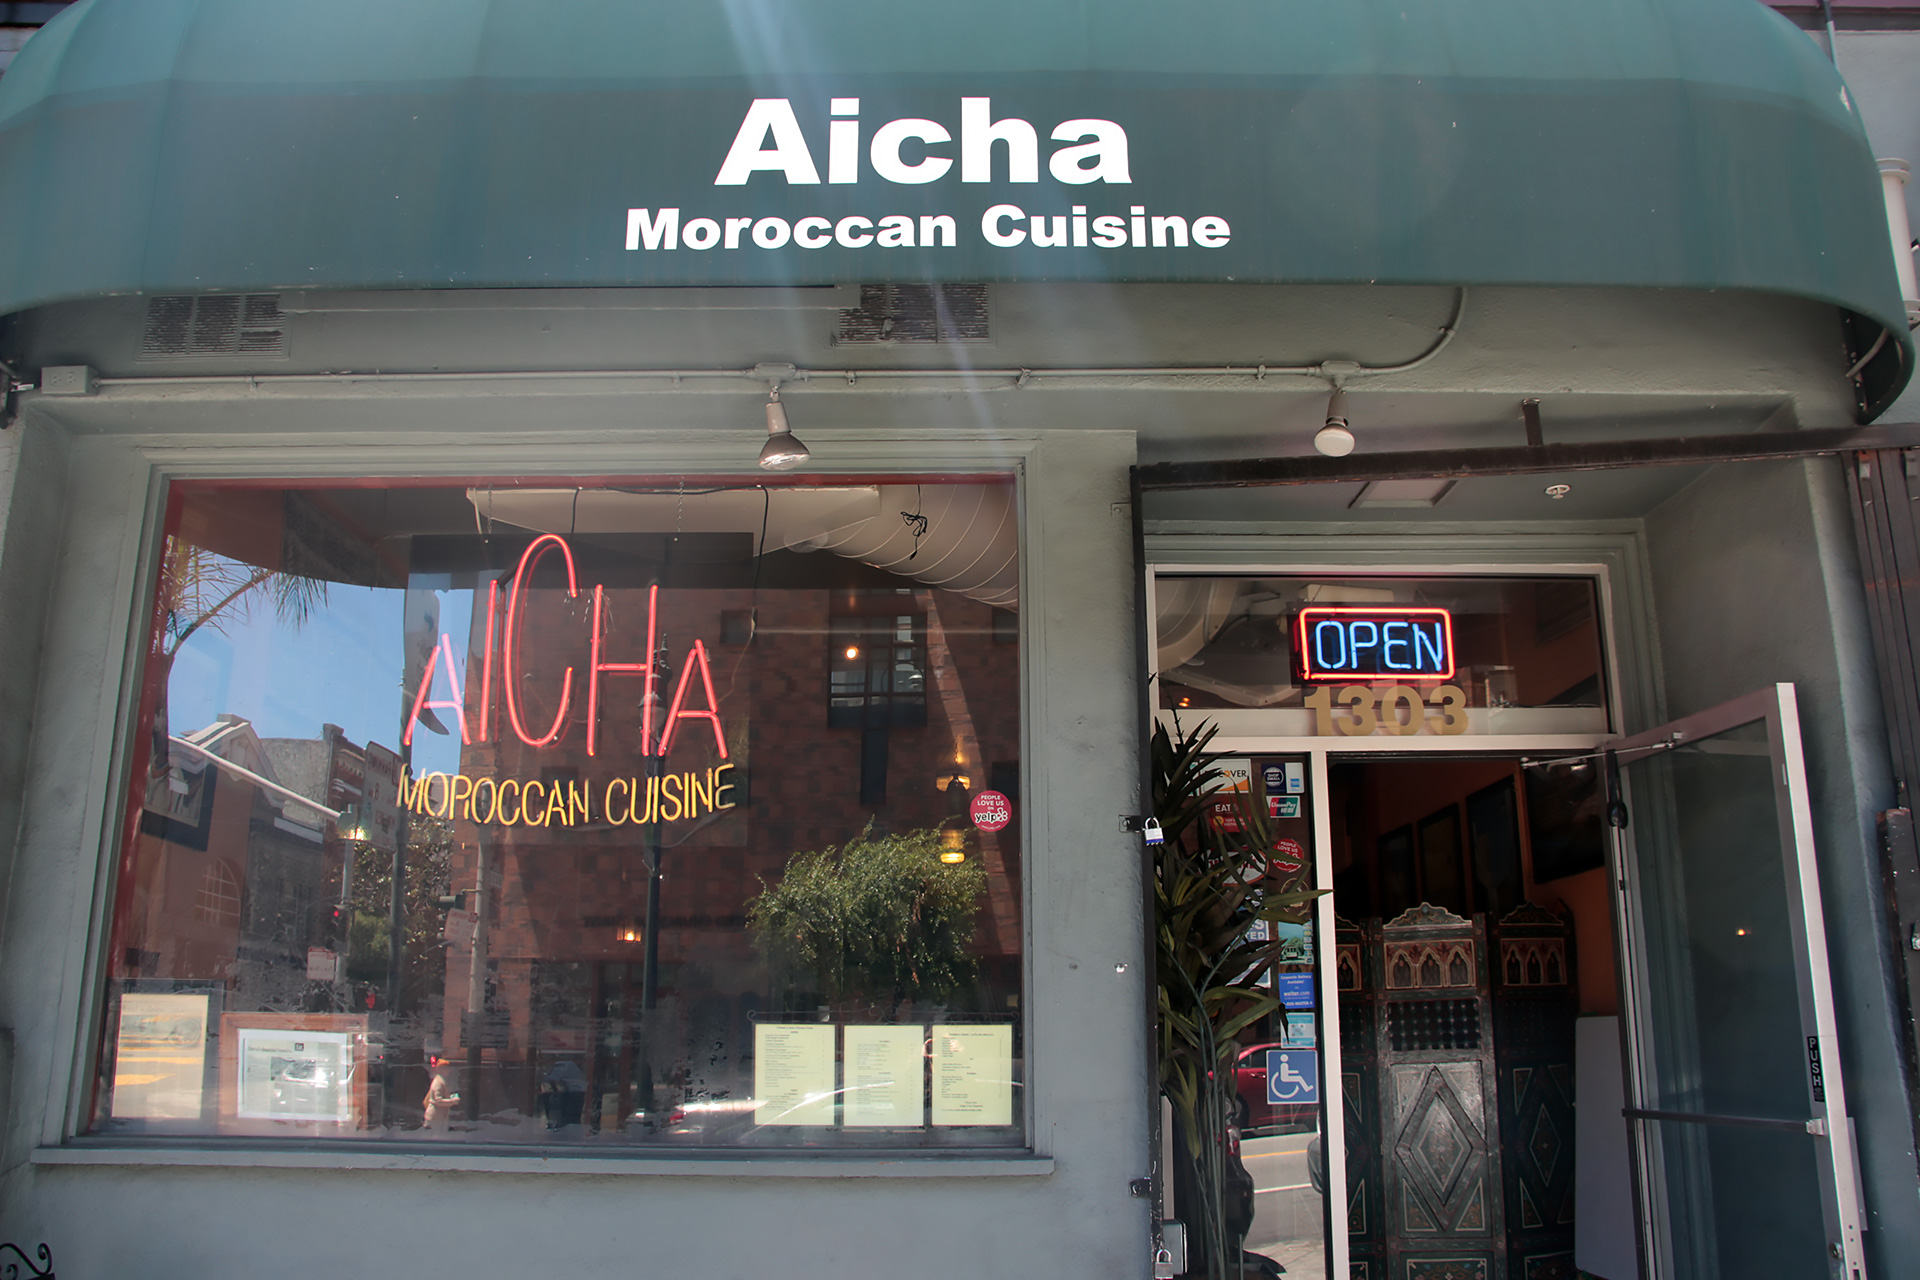 Bay area bites guide exploring the cuisines of africa for Aicha moroccan cuisine san francisco